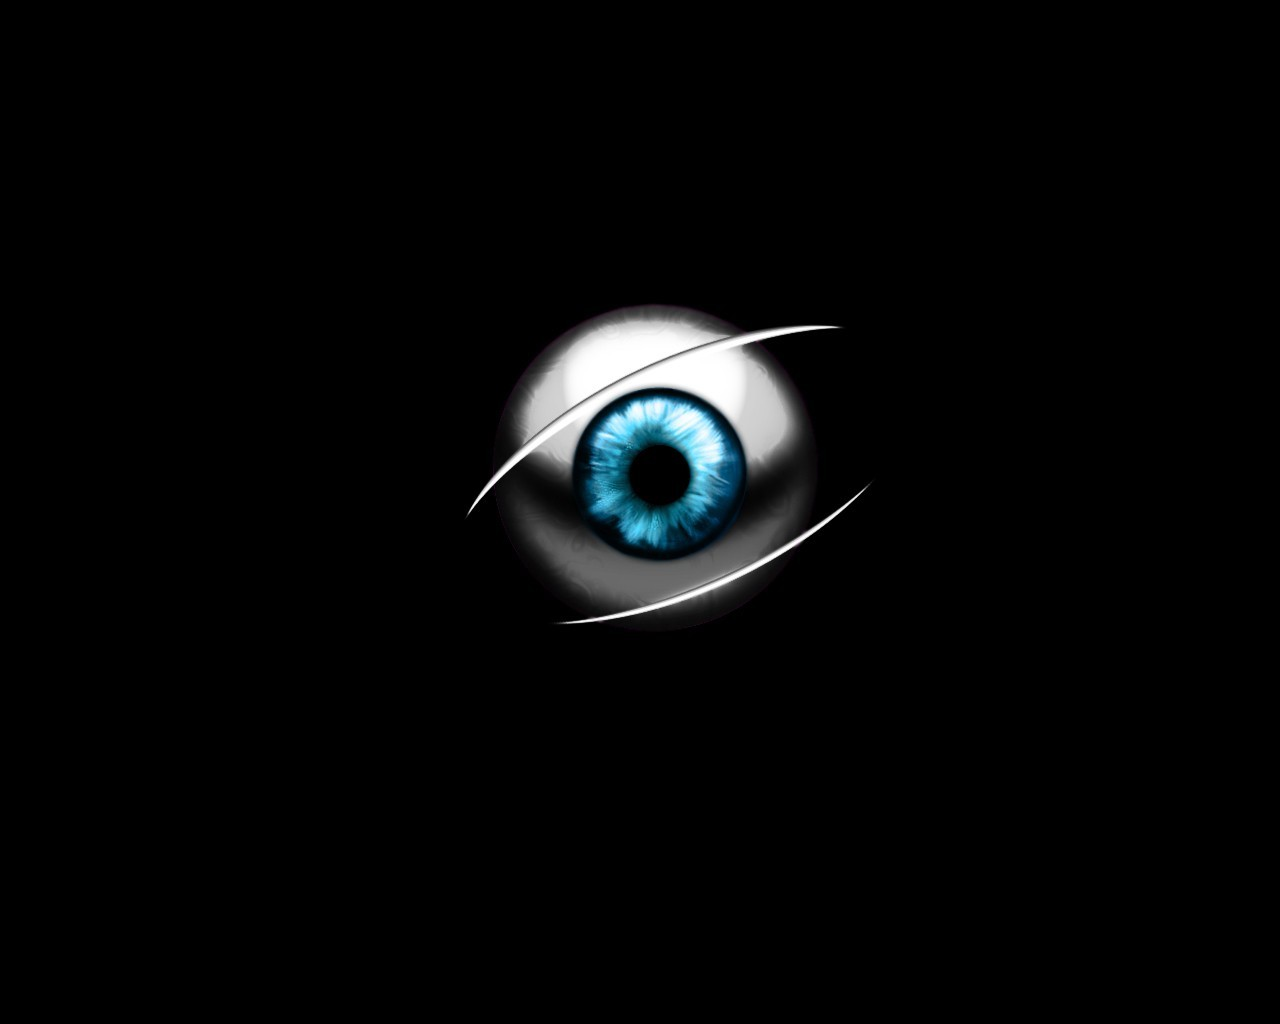 black eye HD Wallpaper